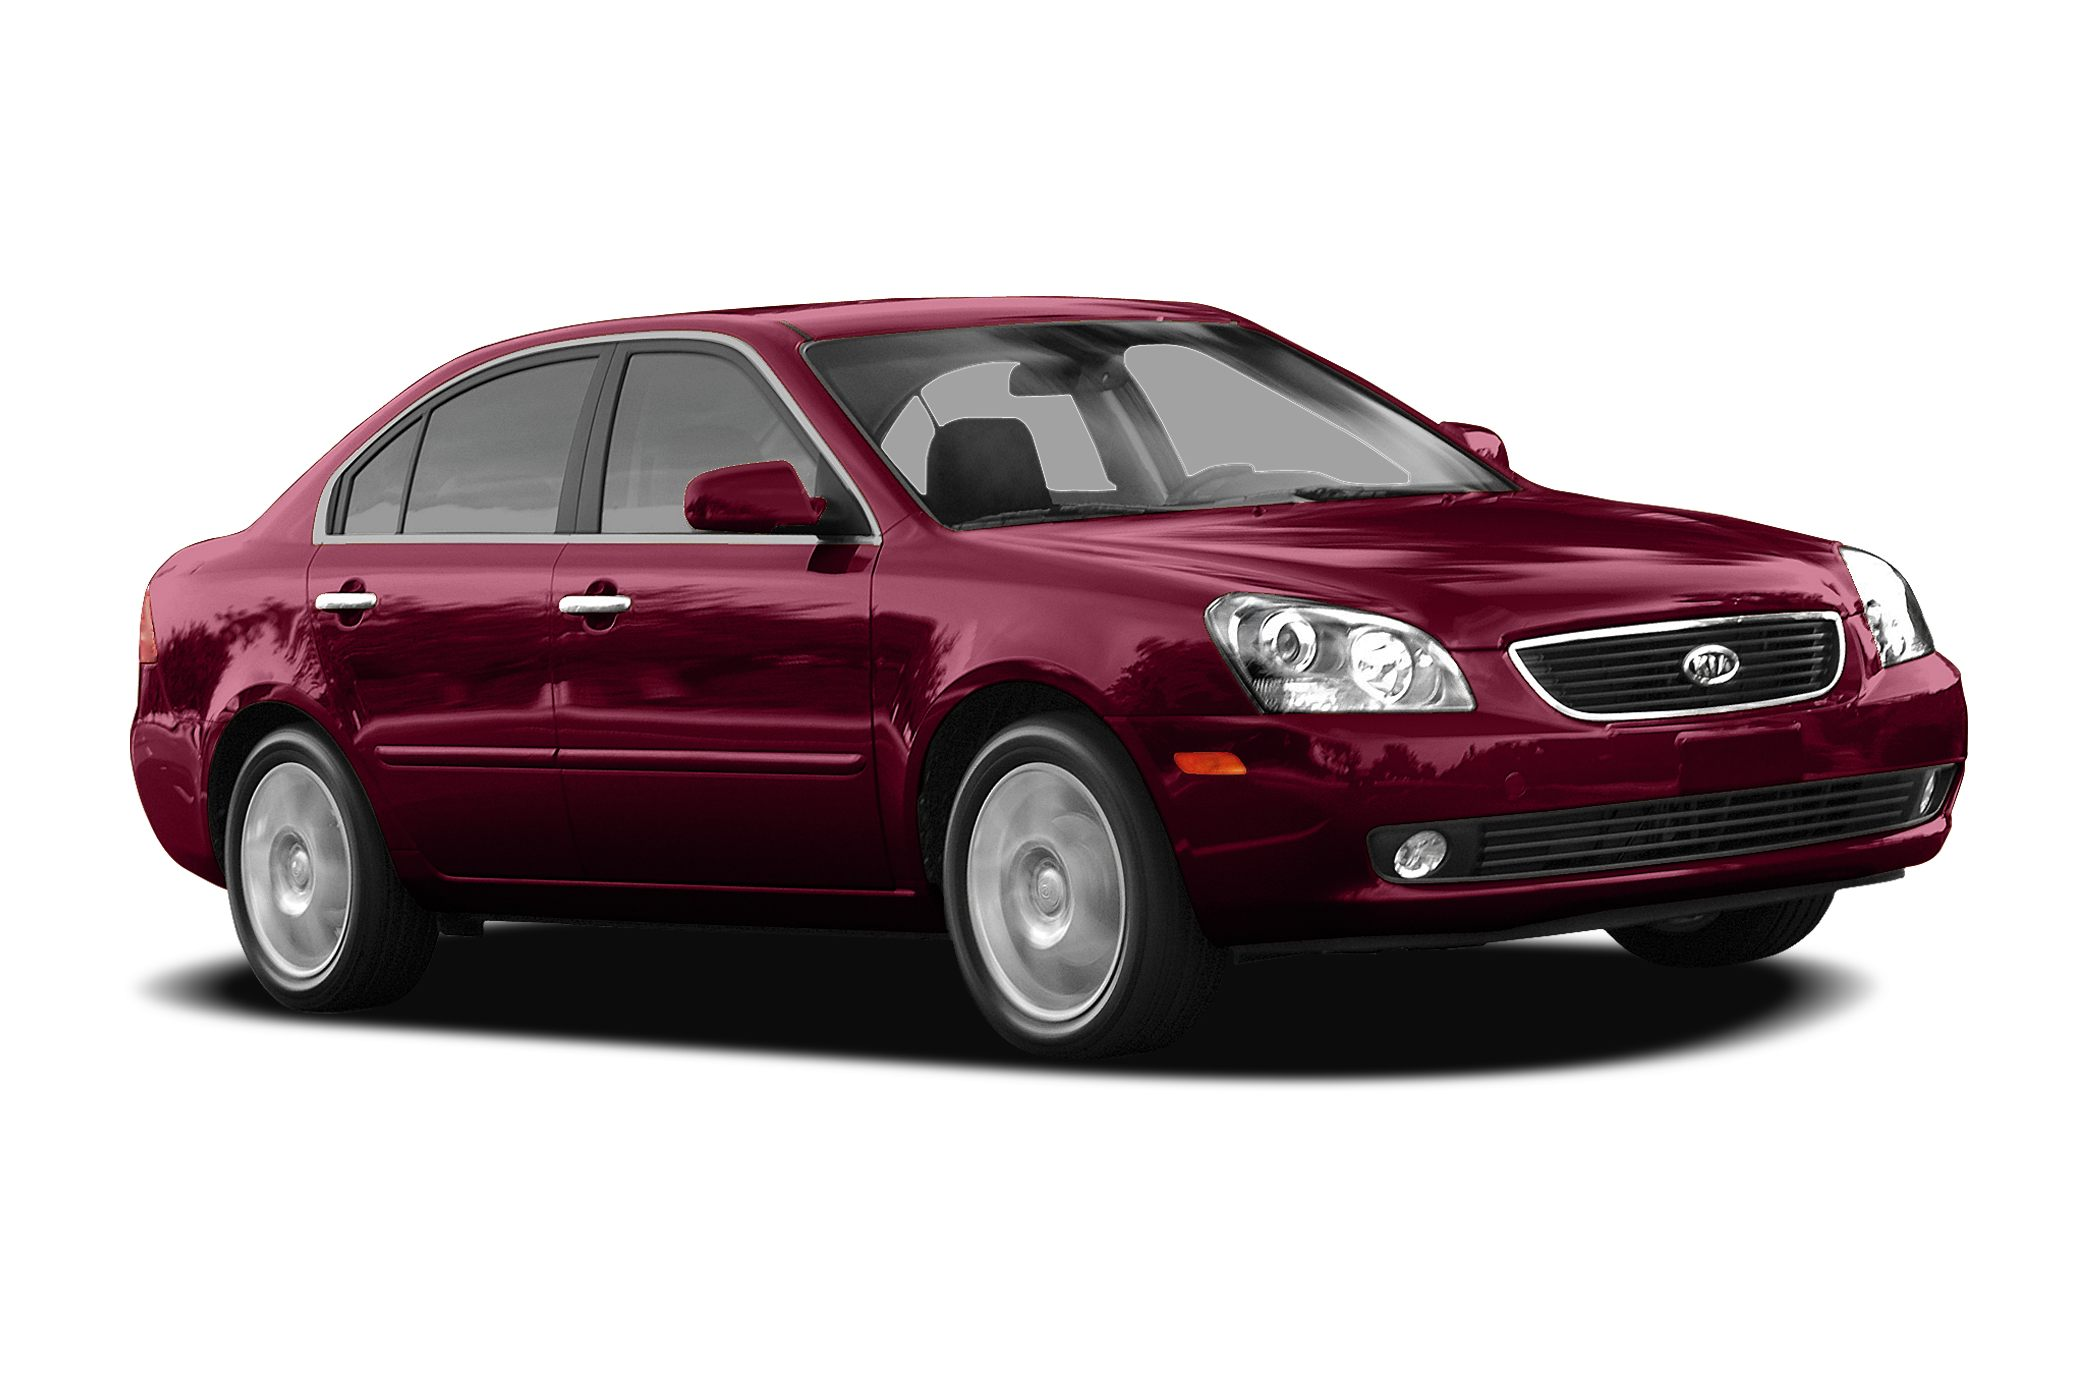 2007 Kia Optima EX Sedan for sale in Rock Hill for $9,995 with 135,533 miles